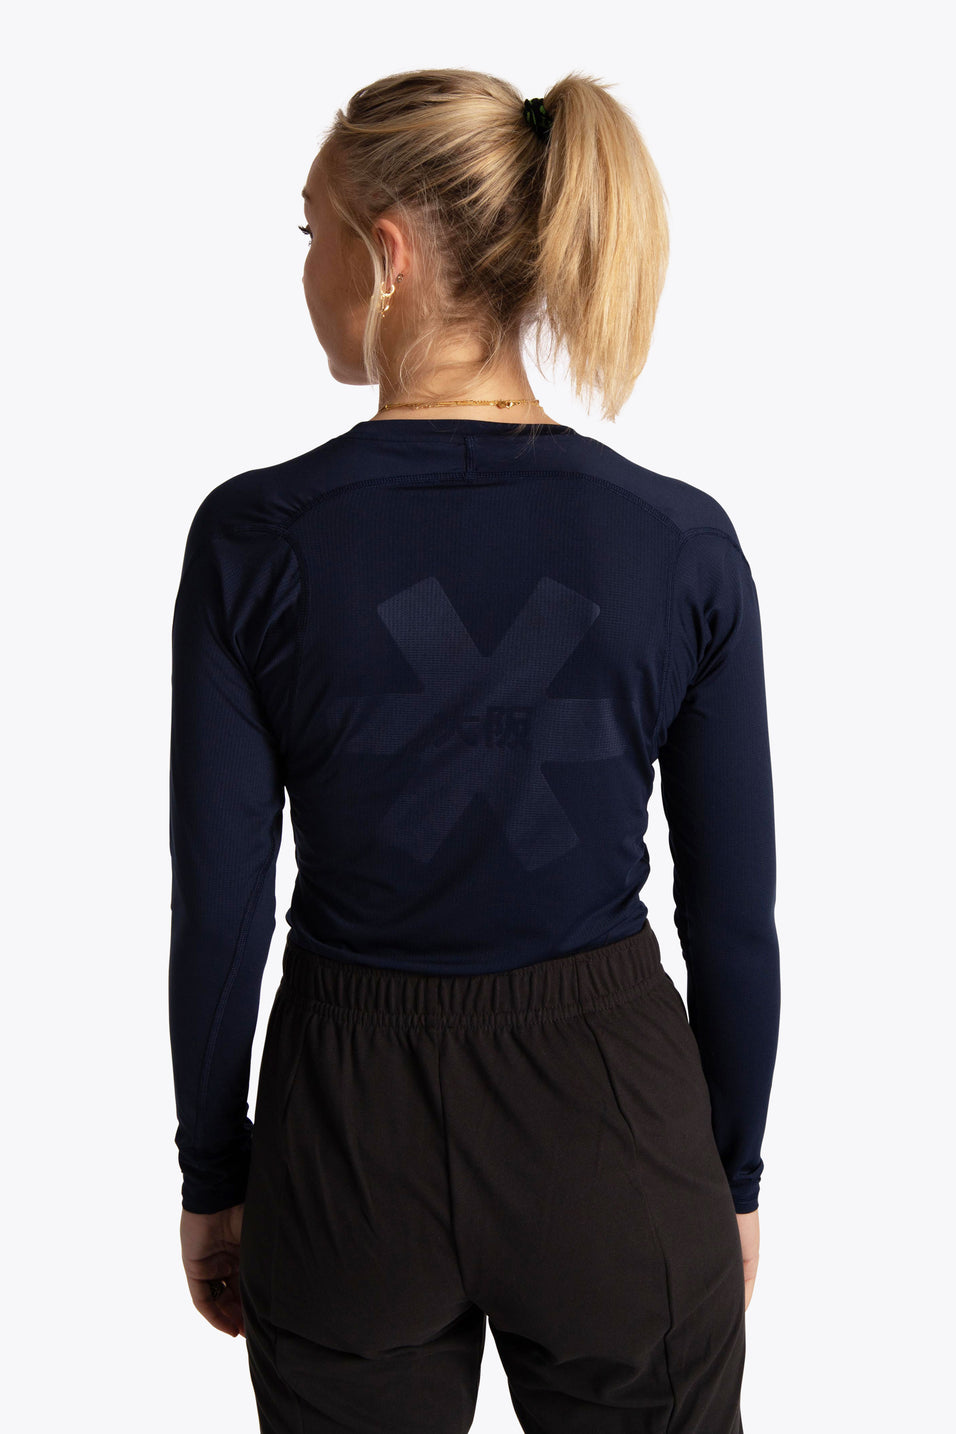 OSaka women base layer top navy